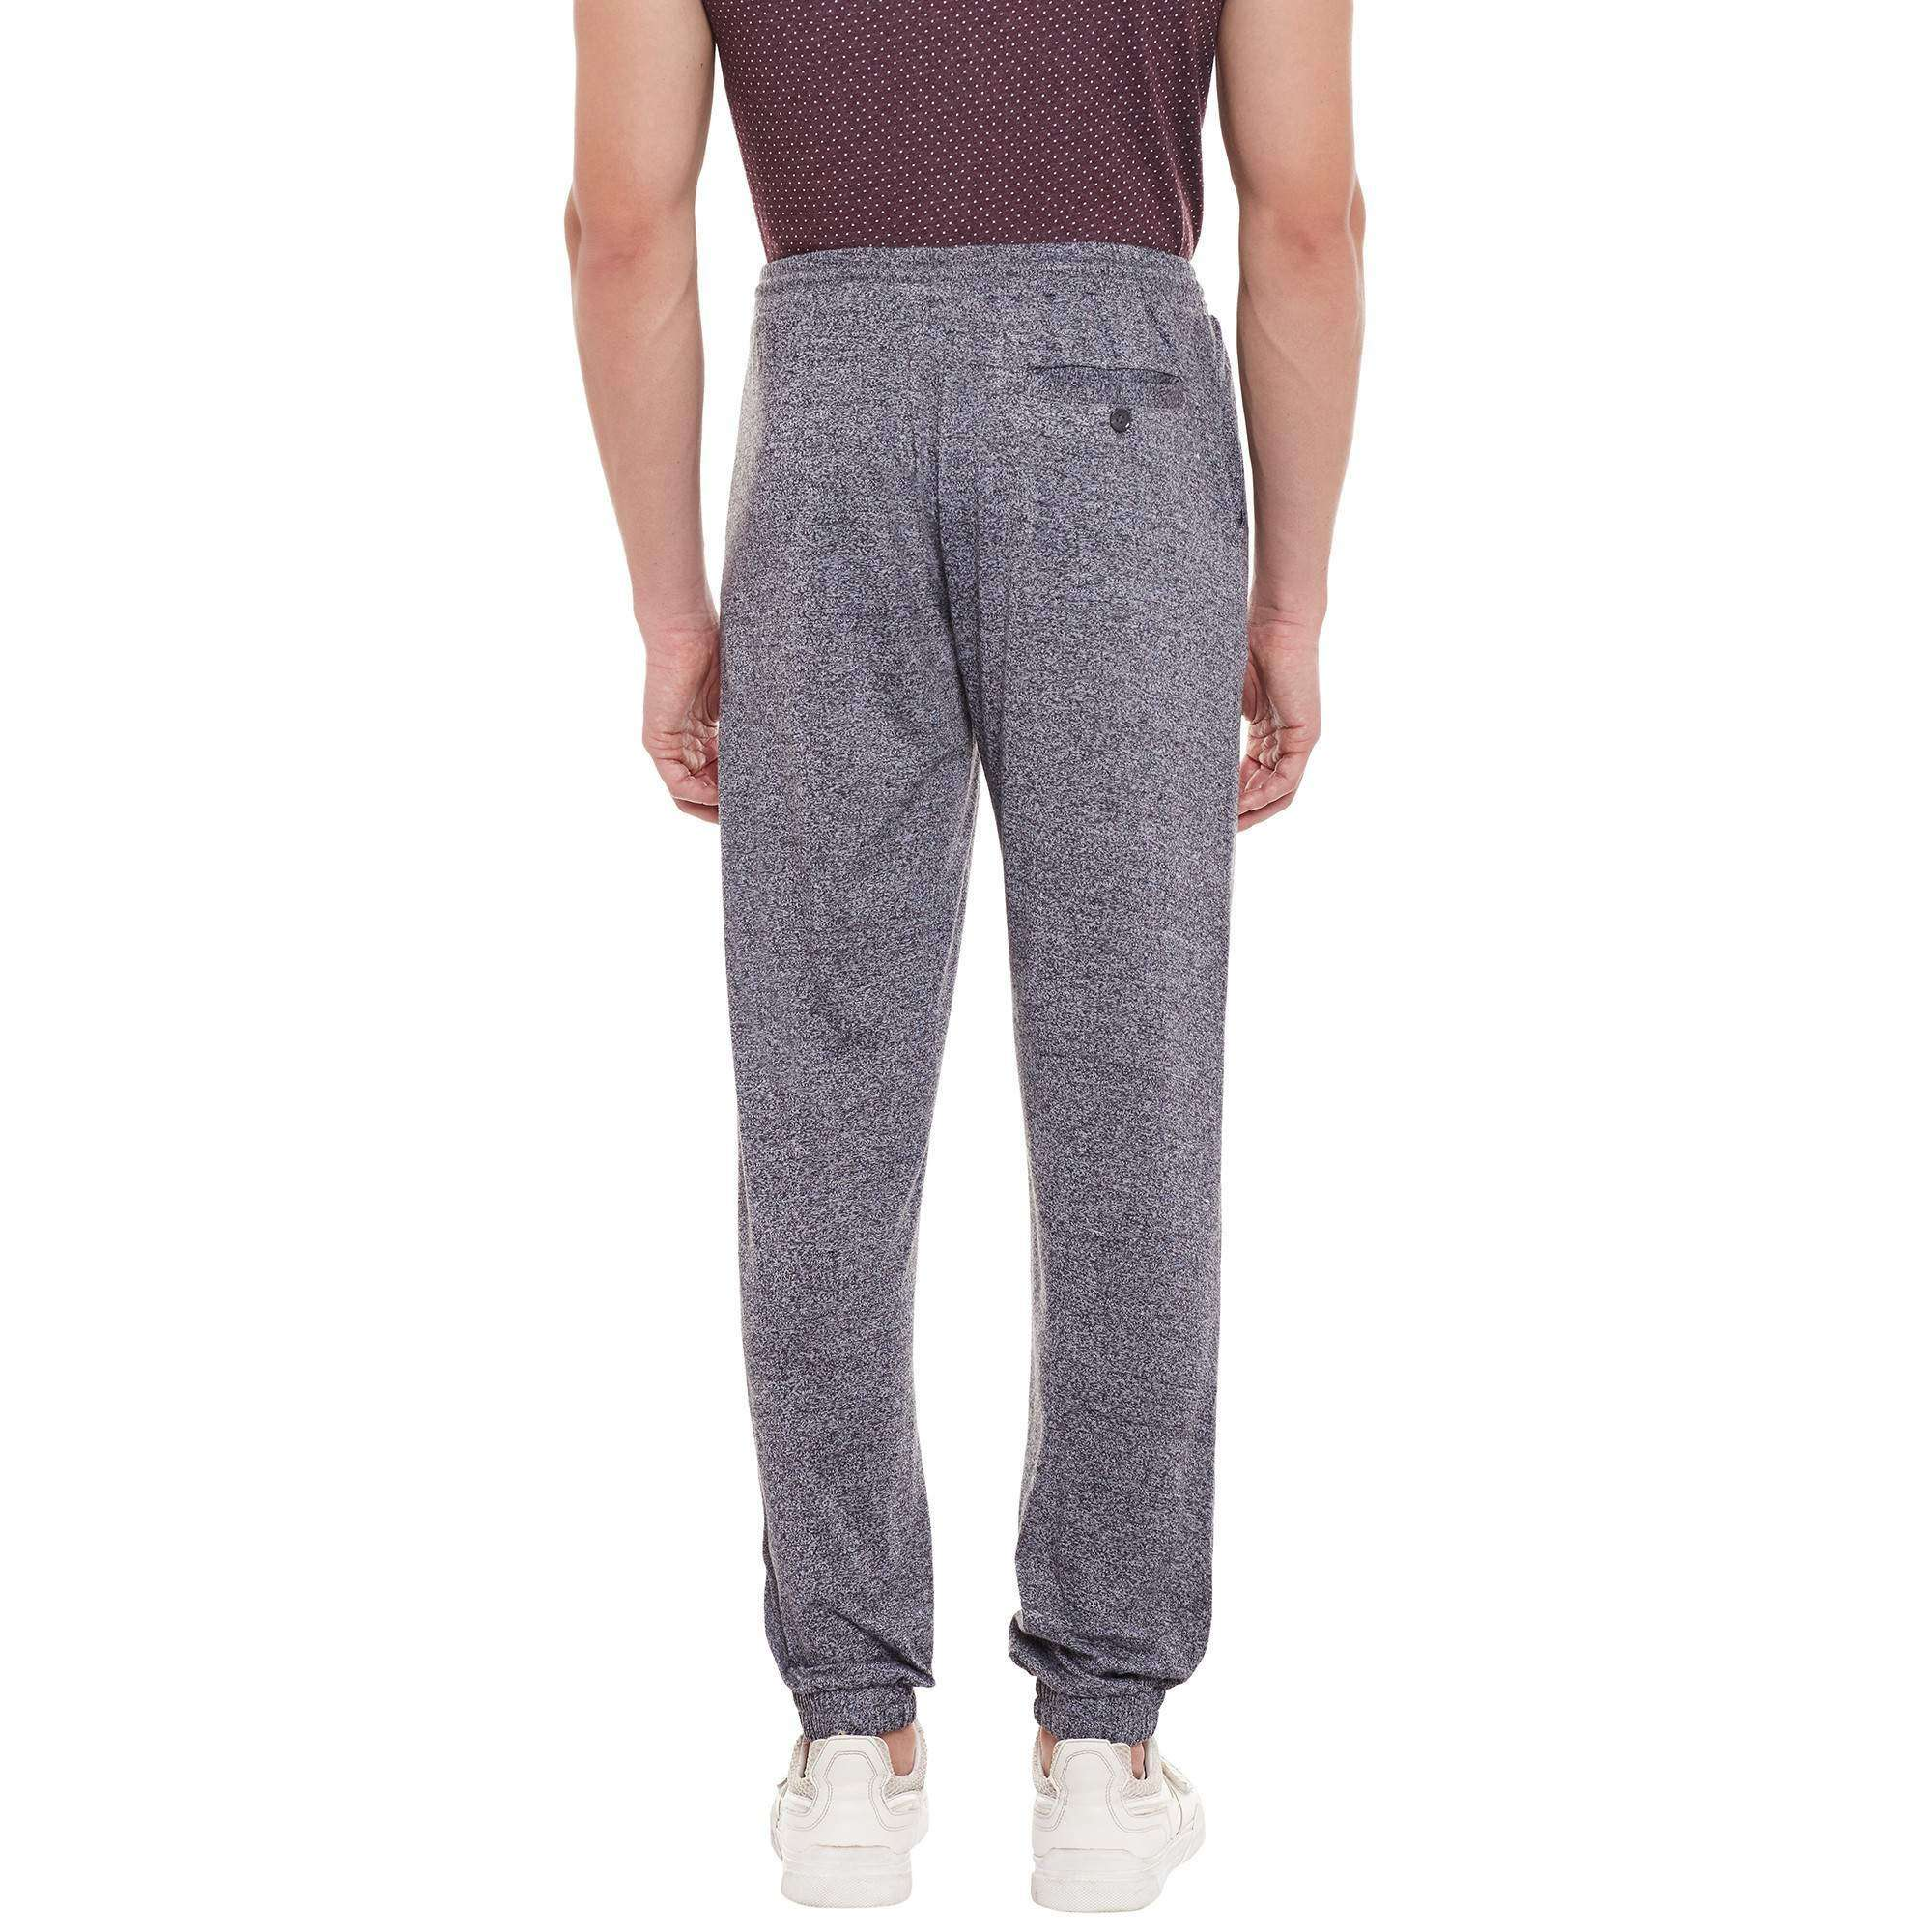 Atorse Mens Joggers with Badges details